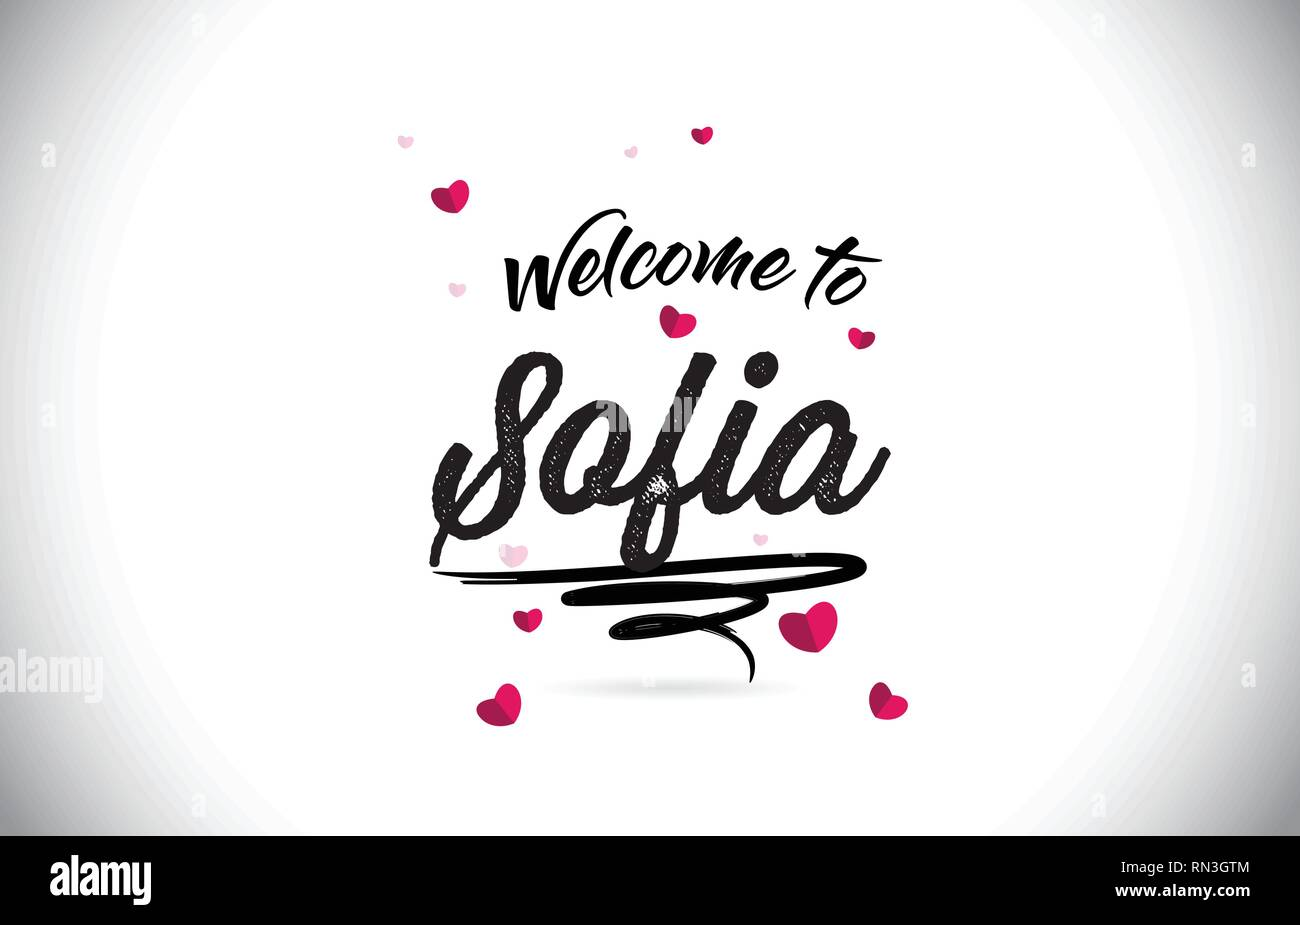 Sofia Welcome To Word Text with Handwritten Font and Pink Heart Shape Design Vector Illustration. Stock Vector